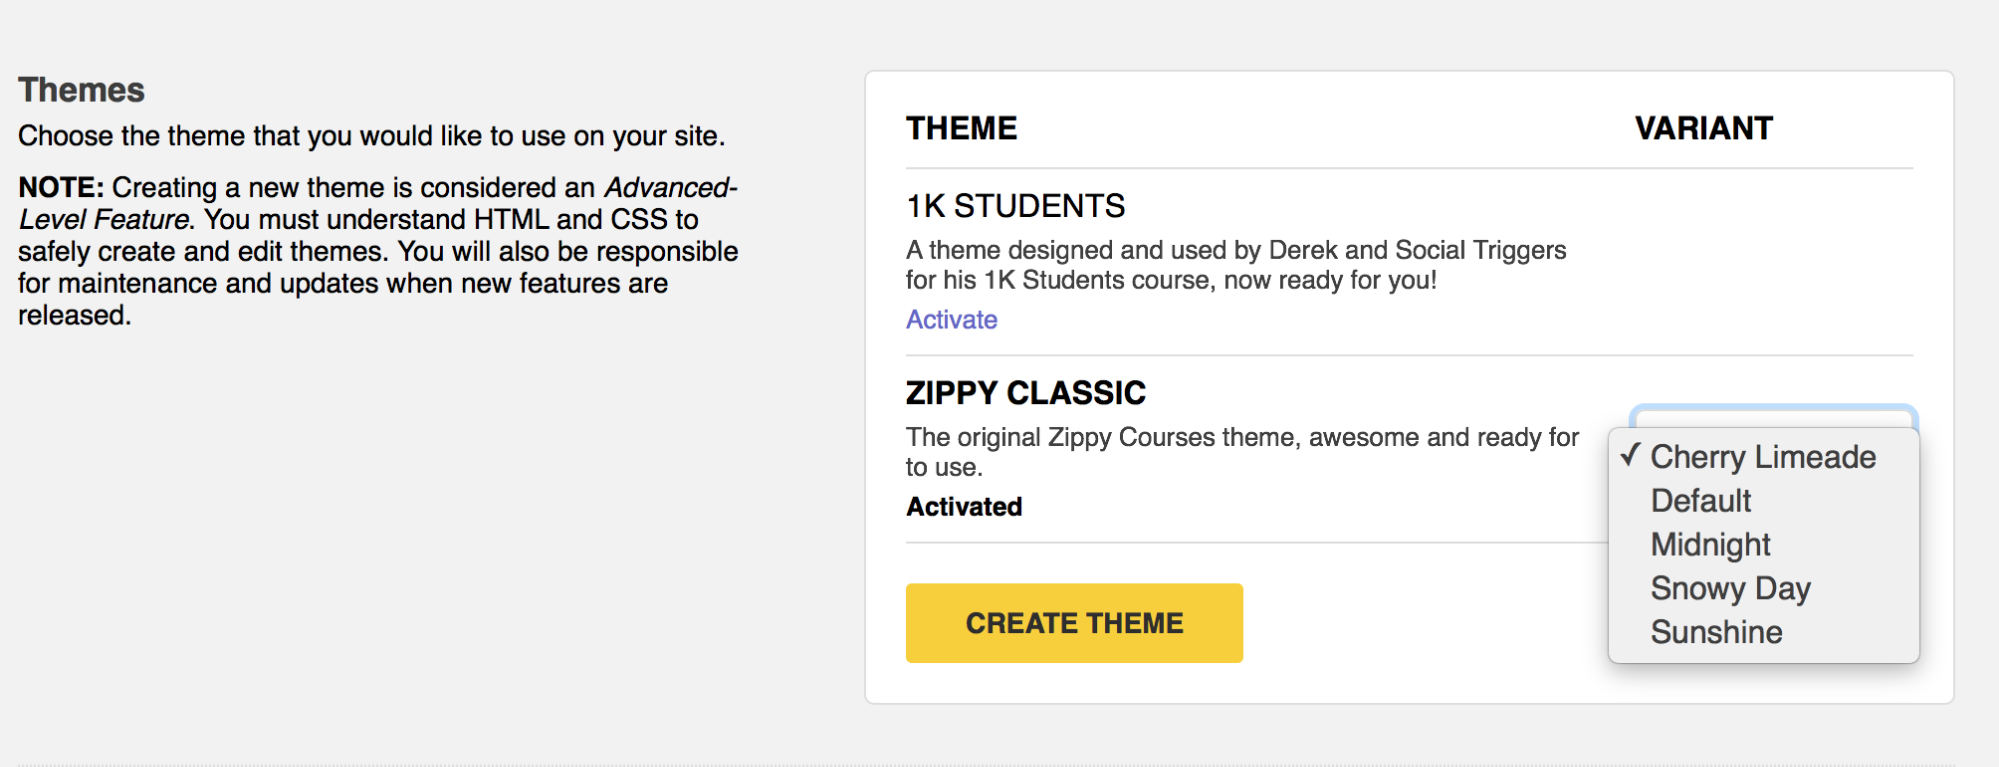 Create your own theme in Zippy Courses